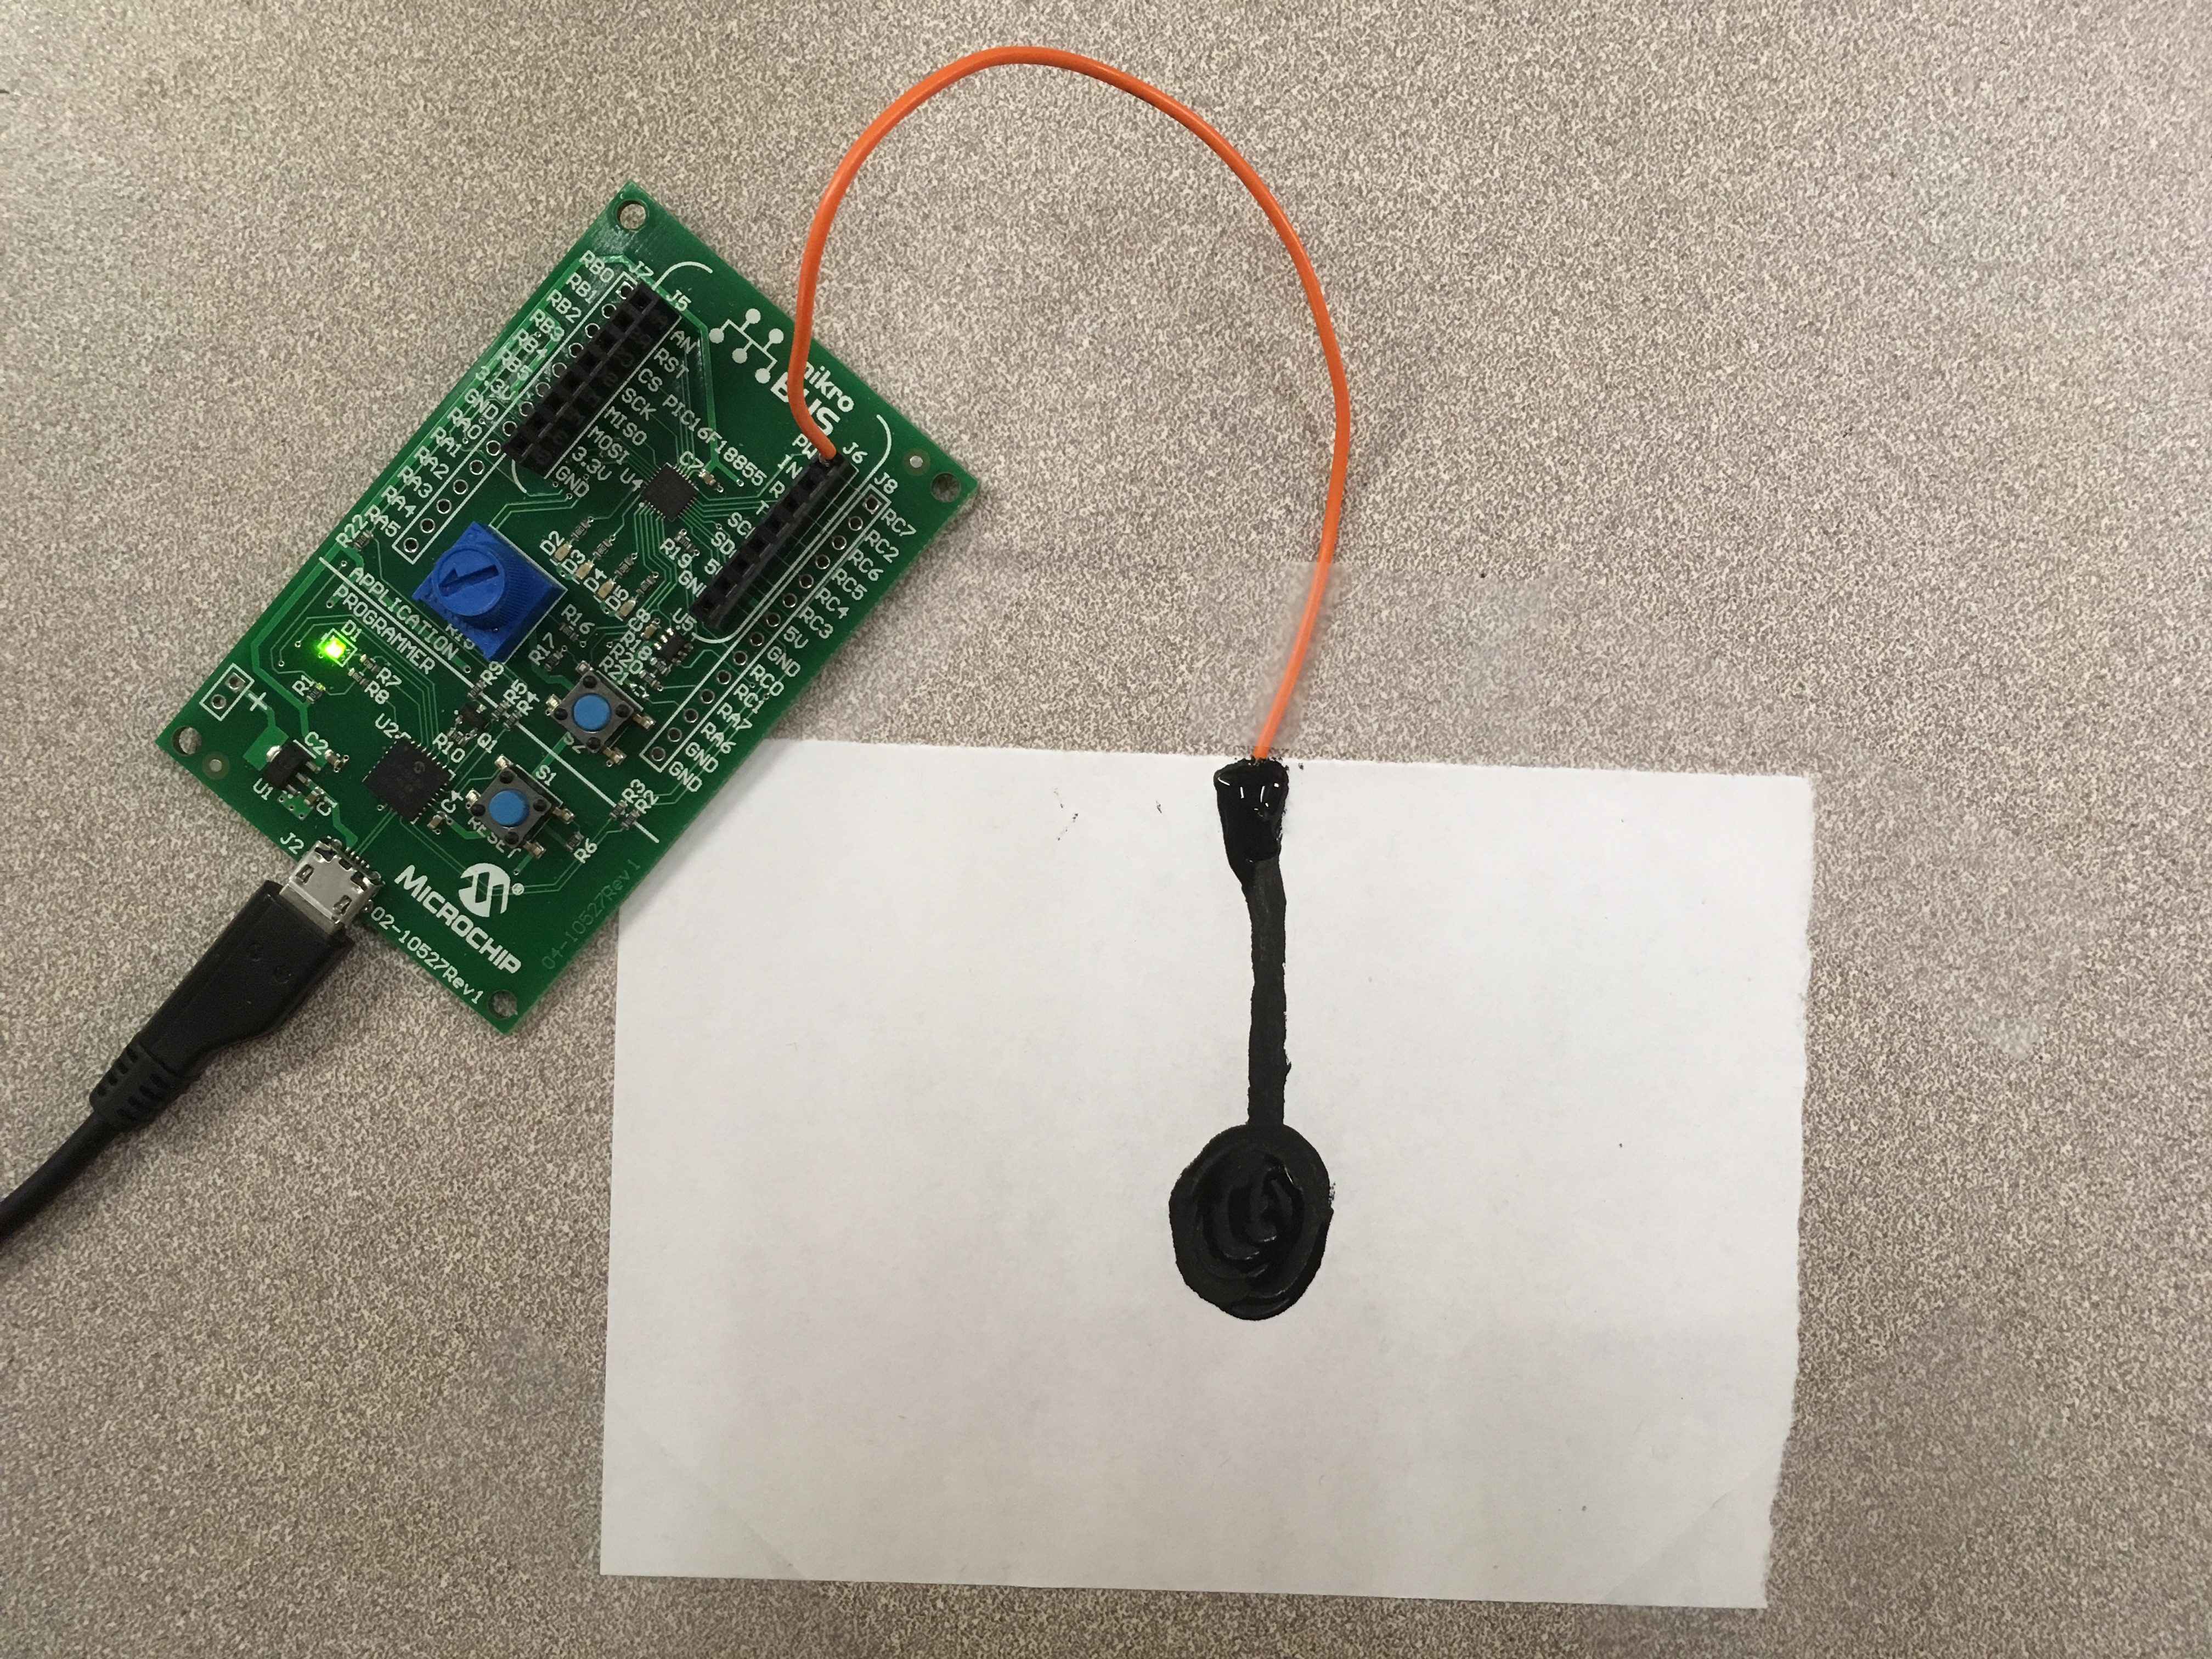 Build A Quick Capacitive Sensor With Conductive Ink Developer Help Emg Block Diagram As Well Lifier Circuit Piezo On Connectsensortoxpress